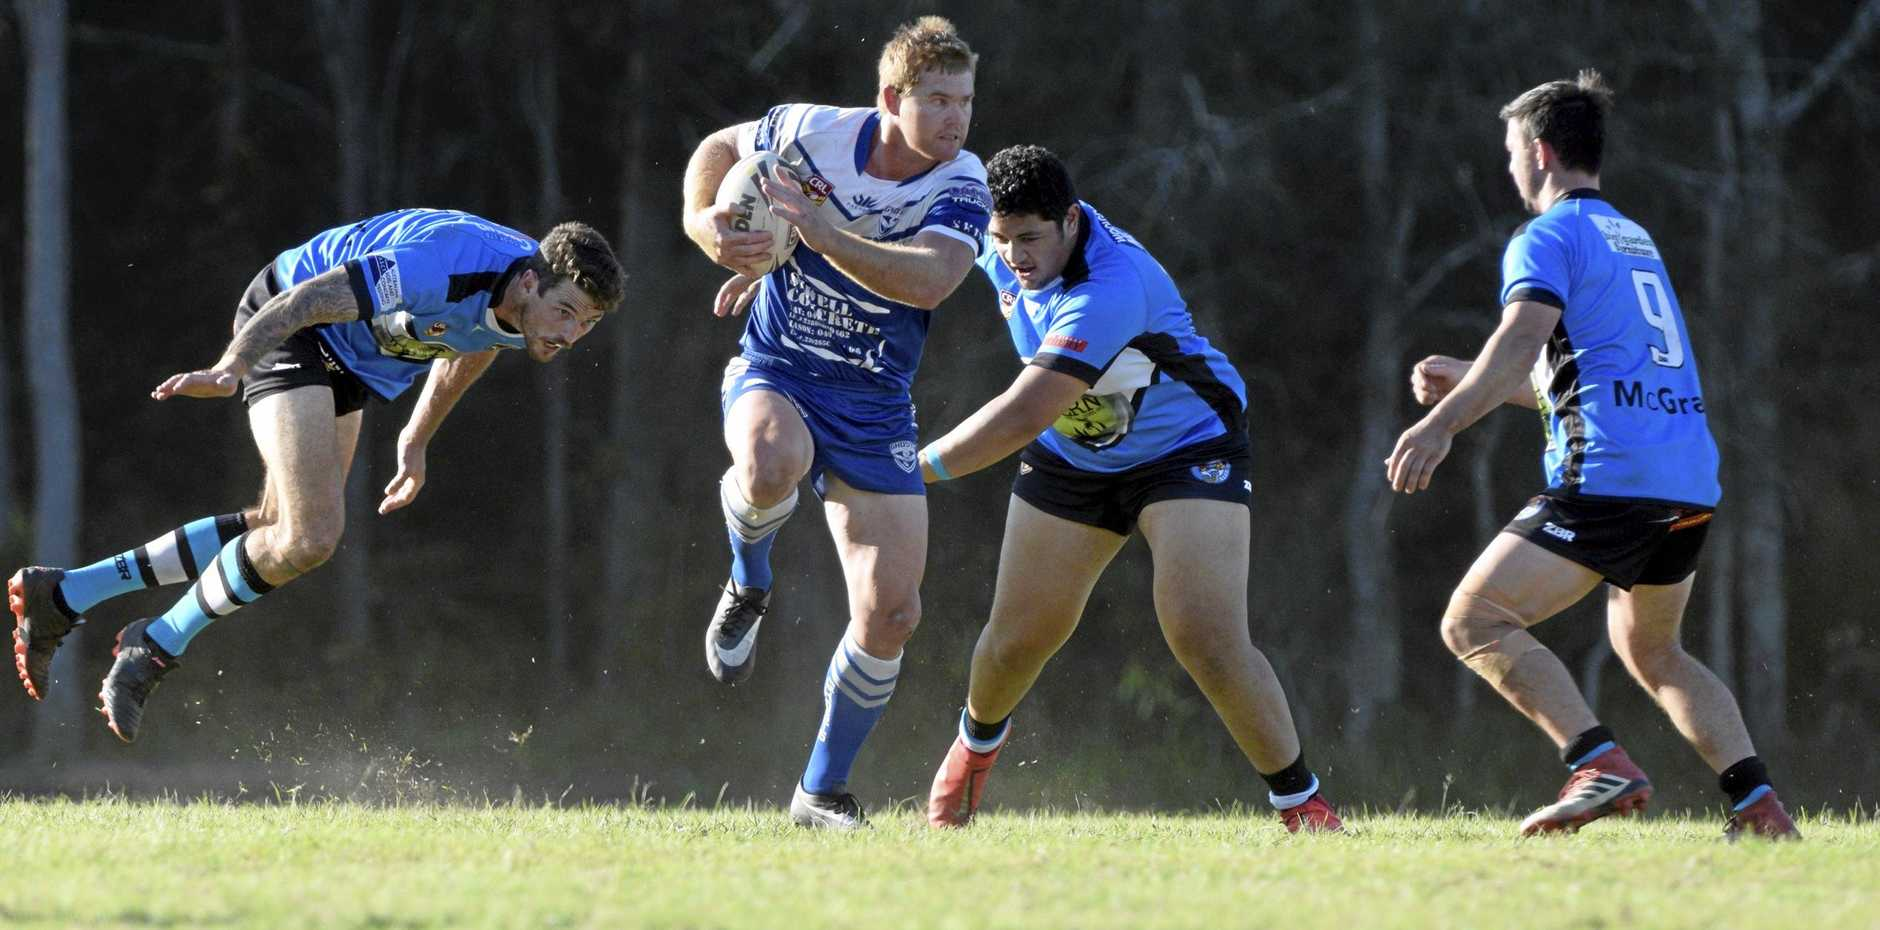 The Grafton Ghosts ran out 48-12 winners over the Woolgoolga Seahorses in this afternoon's Group 2 rugby league first grade match at the Woolgoolga Sportsground.